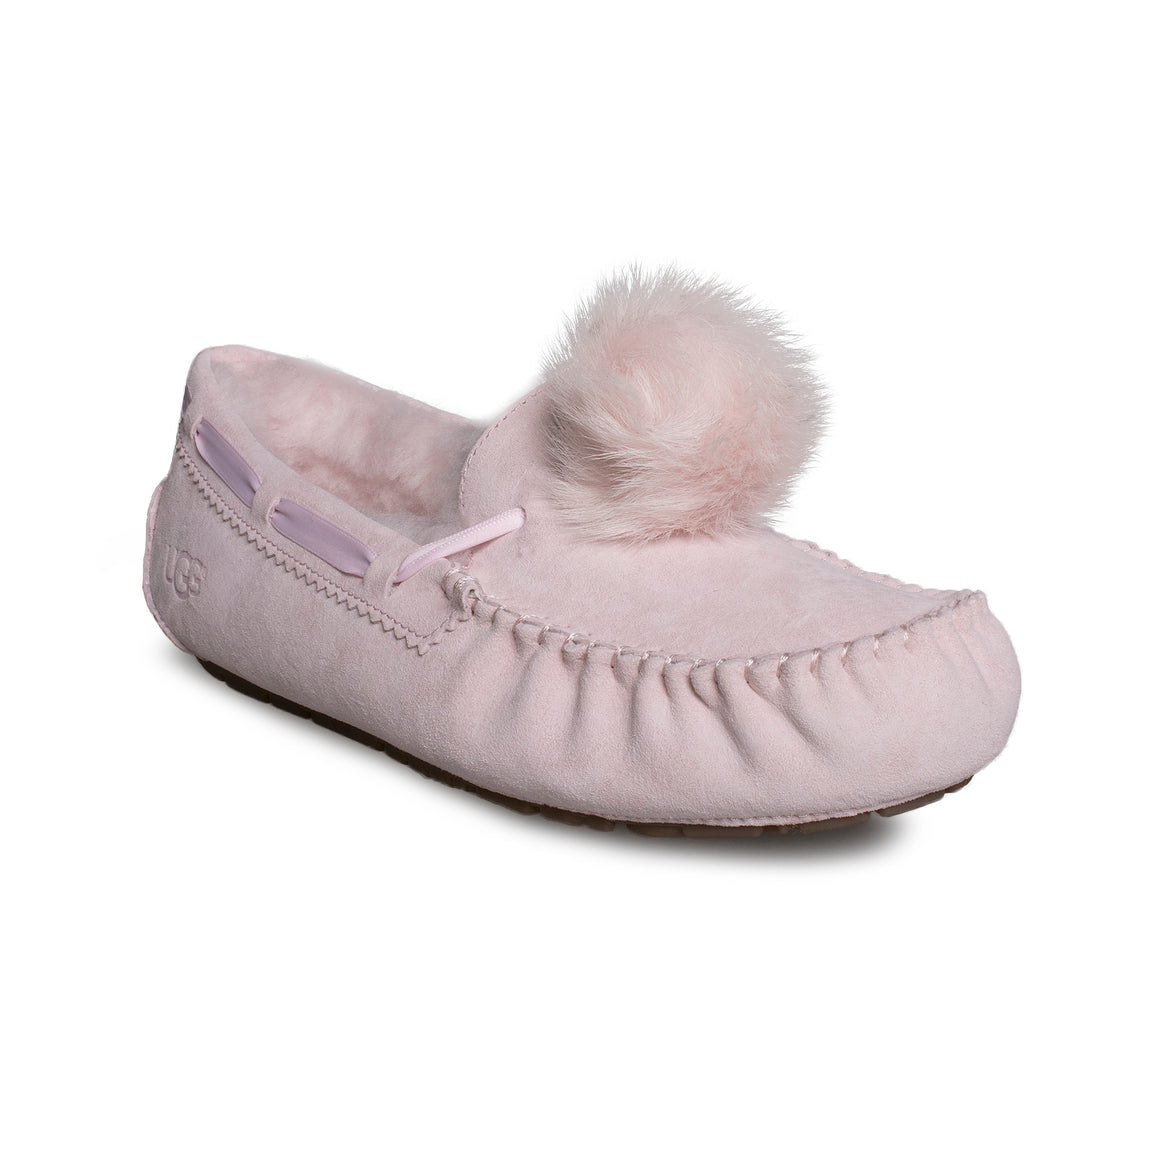 UGG Dakota Pom Pom Seashell Pink Slippers - Women's